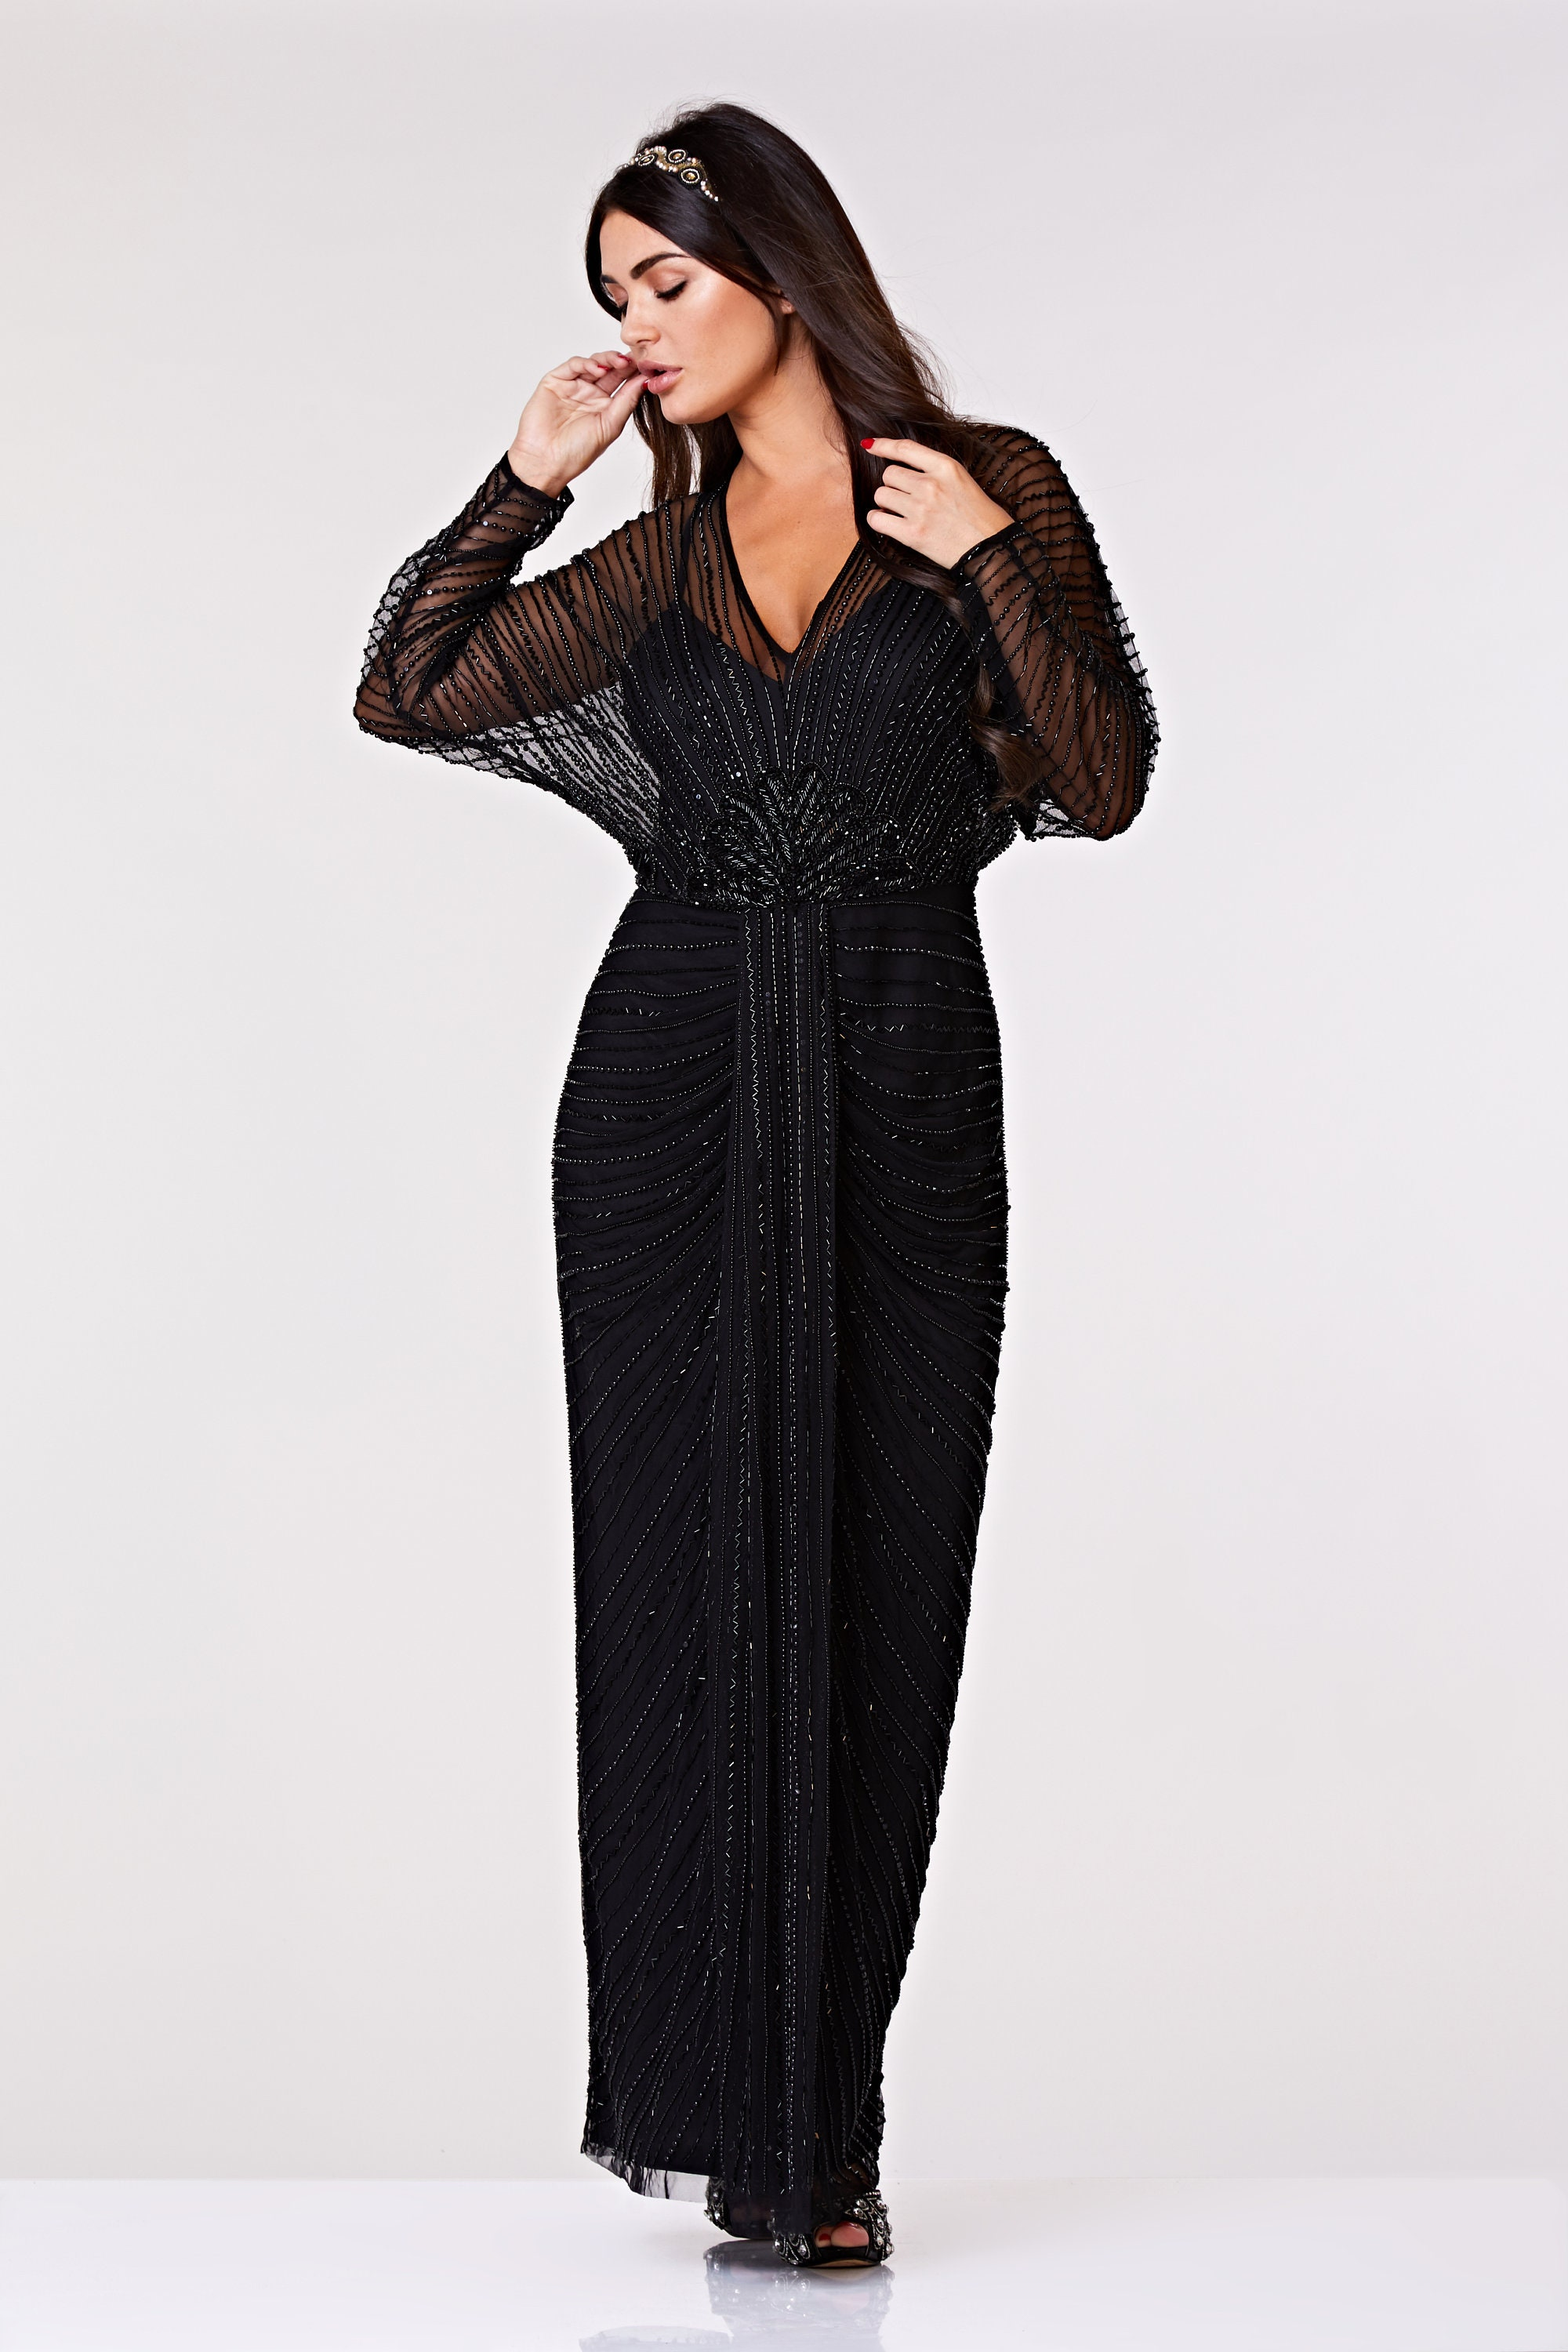 8aed8f6d7 Plus Size Nell Gown Black Prom Maxi Dress with Sleeves 20s Flapper Great  Gatsby Formal Speakeasy Wedding Reception Bridesmaids prom